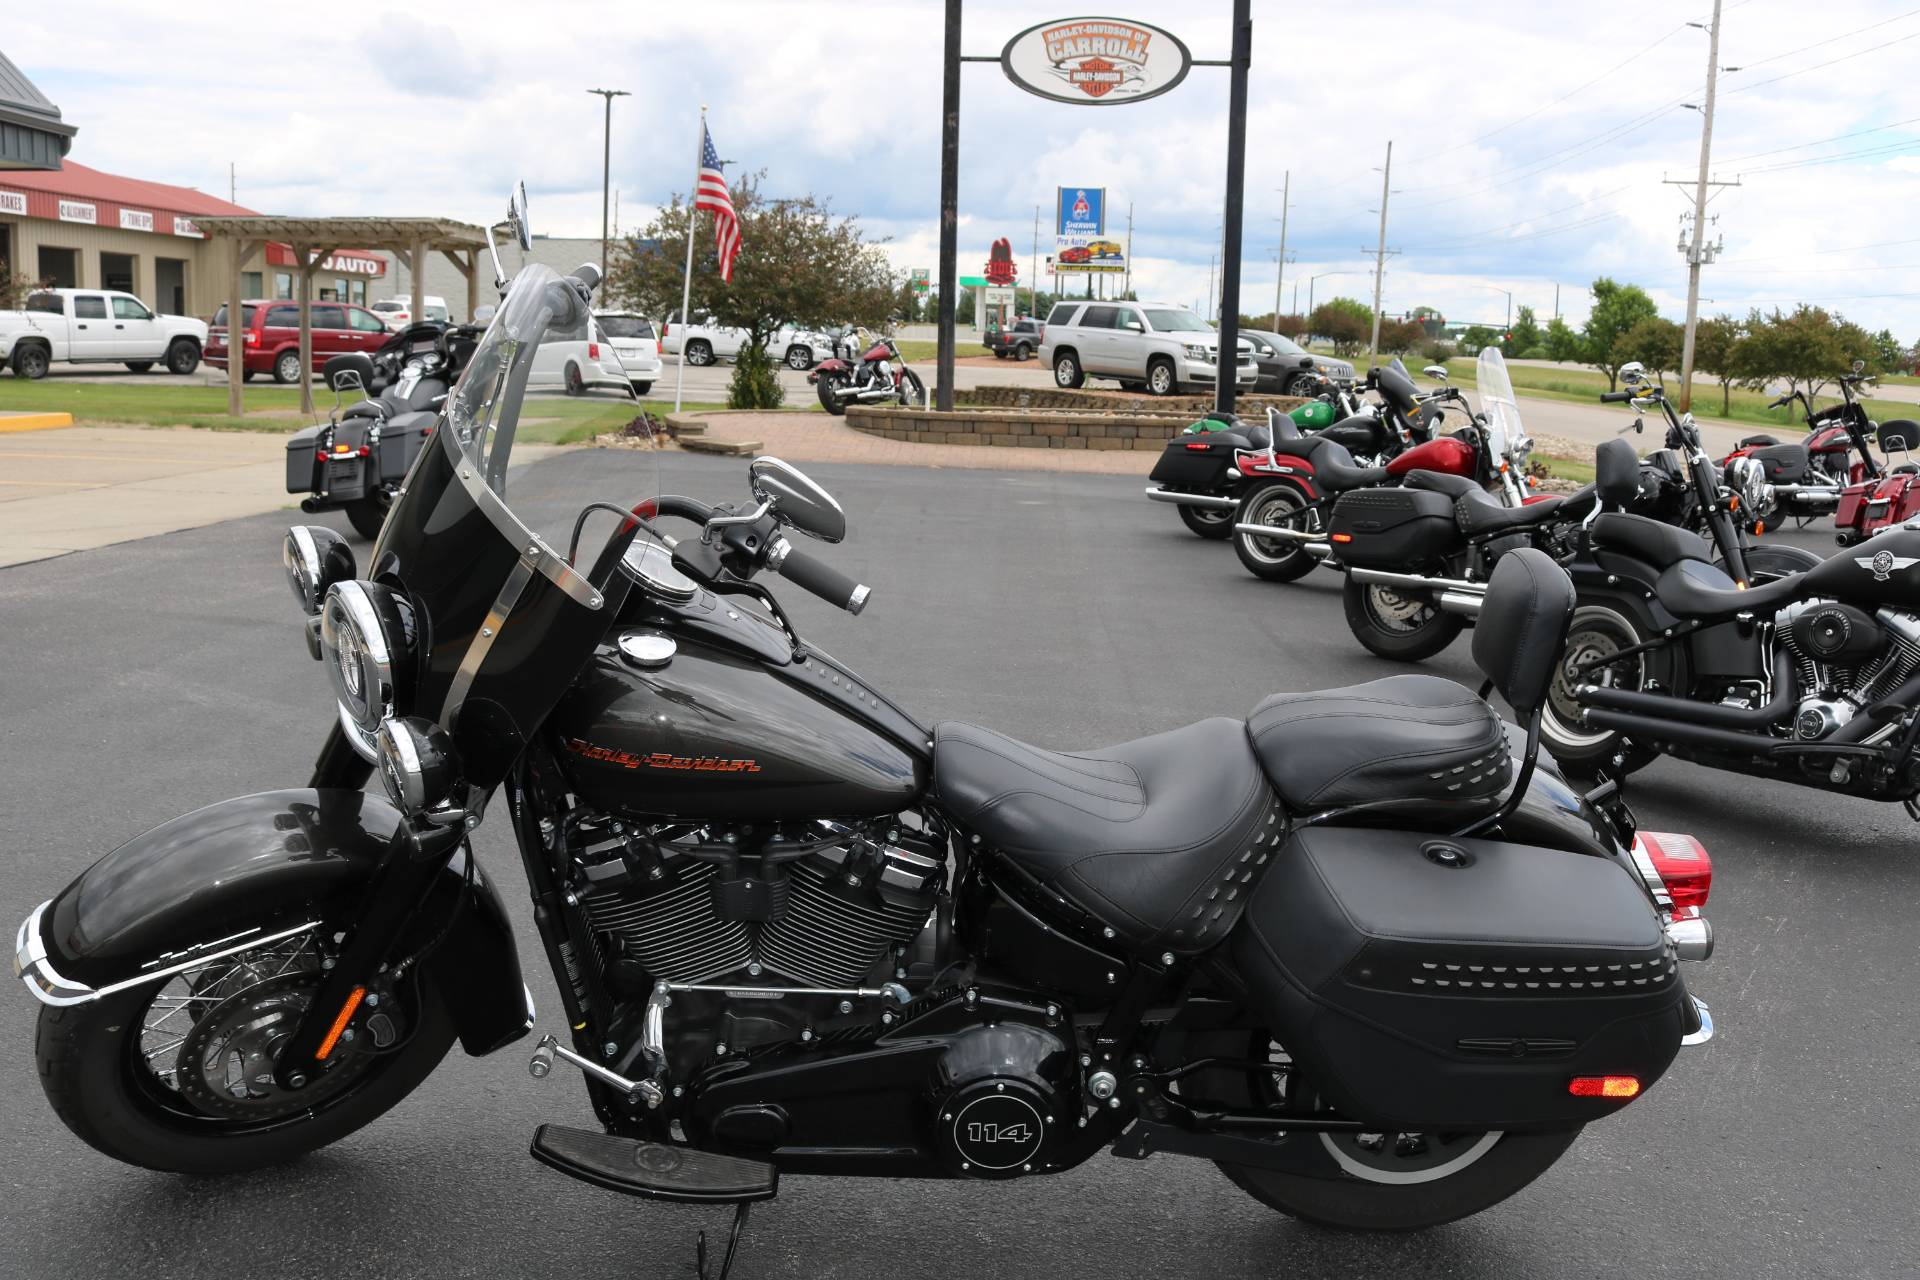 2019 Harley-Davidson Heritage Classic 114 in Carroll, Iowa - Photo 1